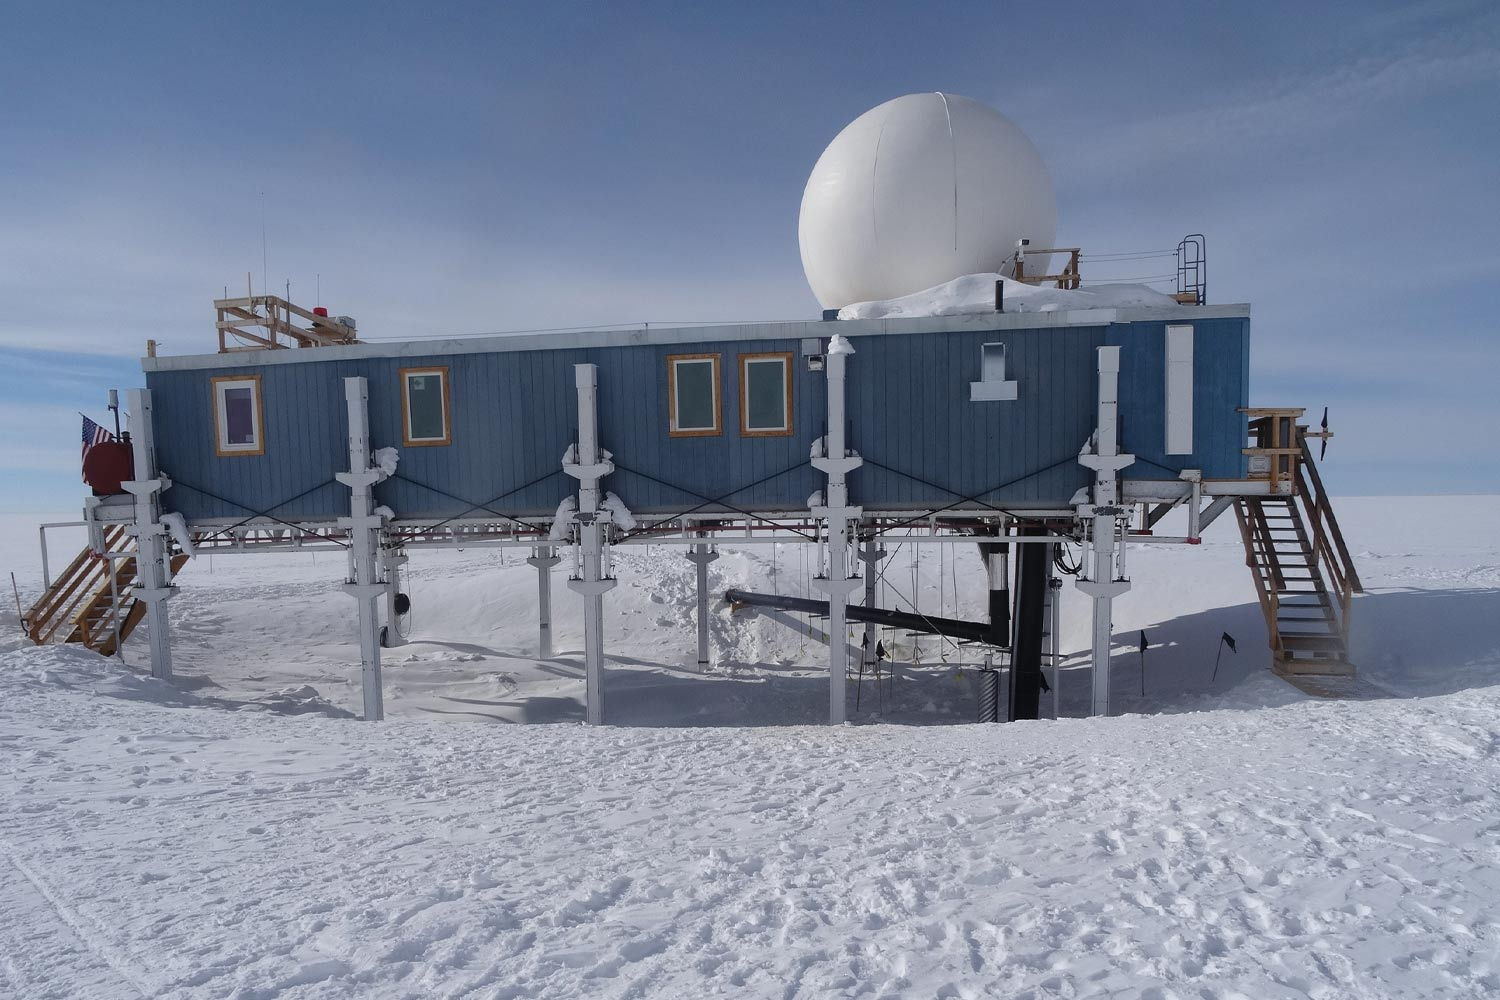 Full view of year-round research station located in Summit, Greenland